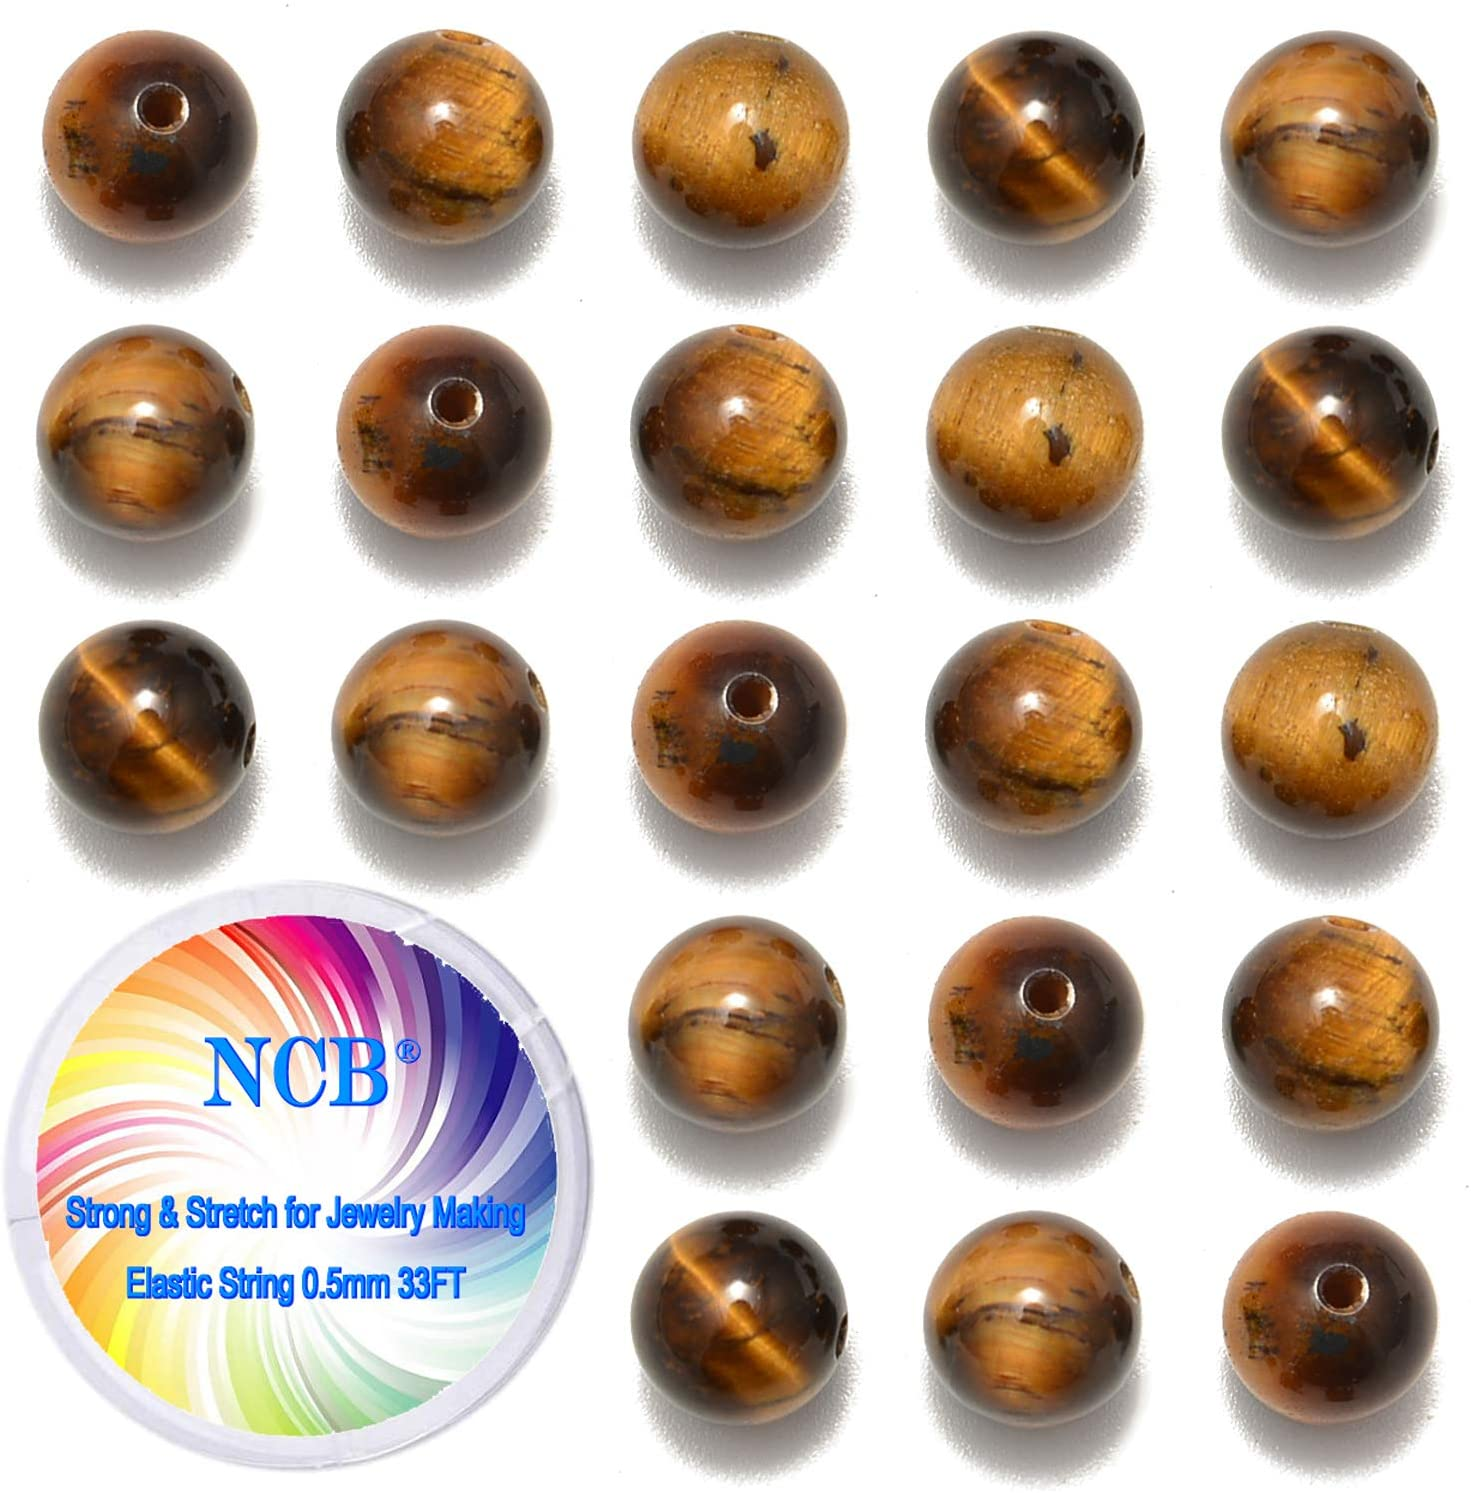 NCB 200pcs 6mm Yellow Tigers Eye Loose Beads for Jewelry Making, Natural Semi Precious Beads Round Smooth Gemstones Spacer Beads Charms for Necklaces Bracelets (Yellow Tigers Eye, 6mm 200Beads)